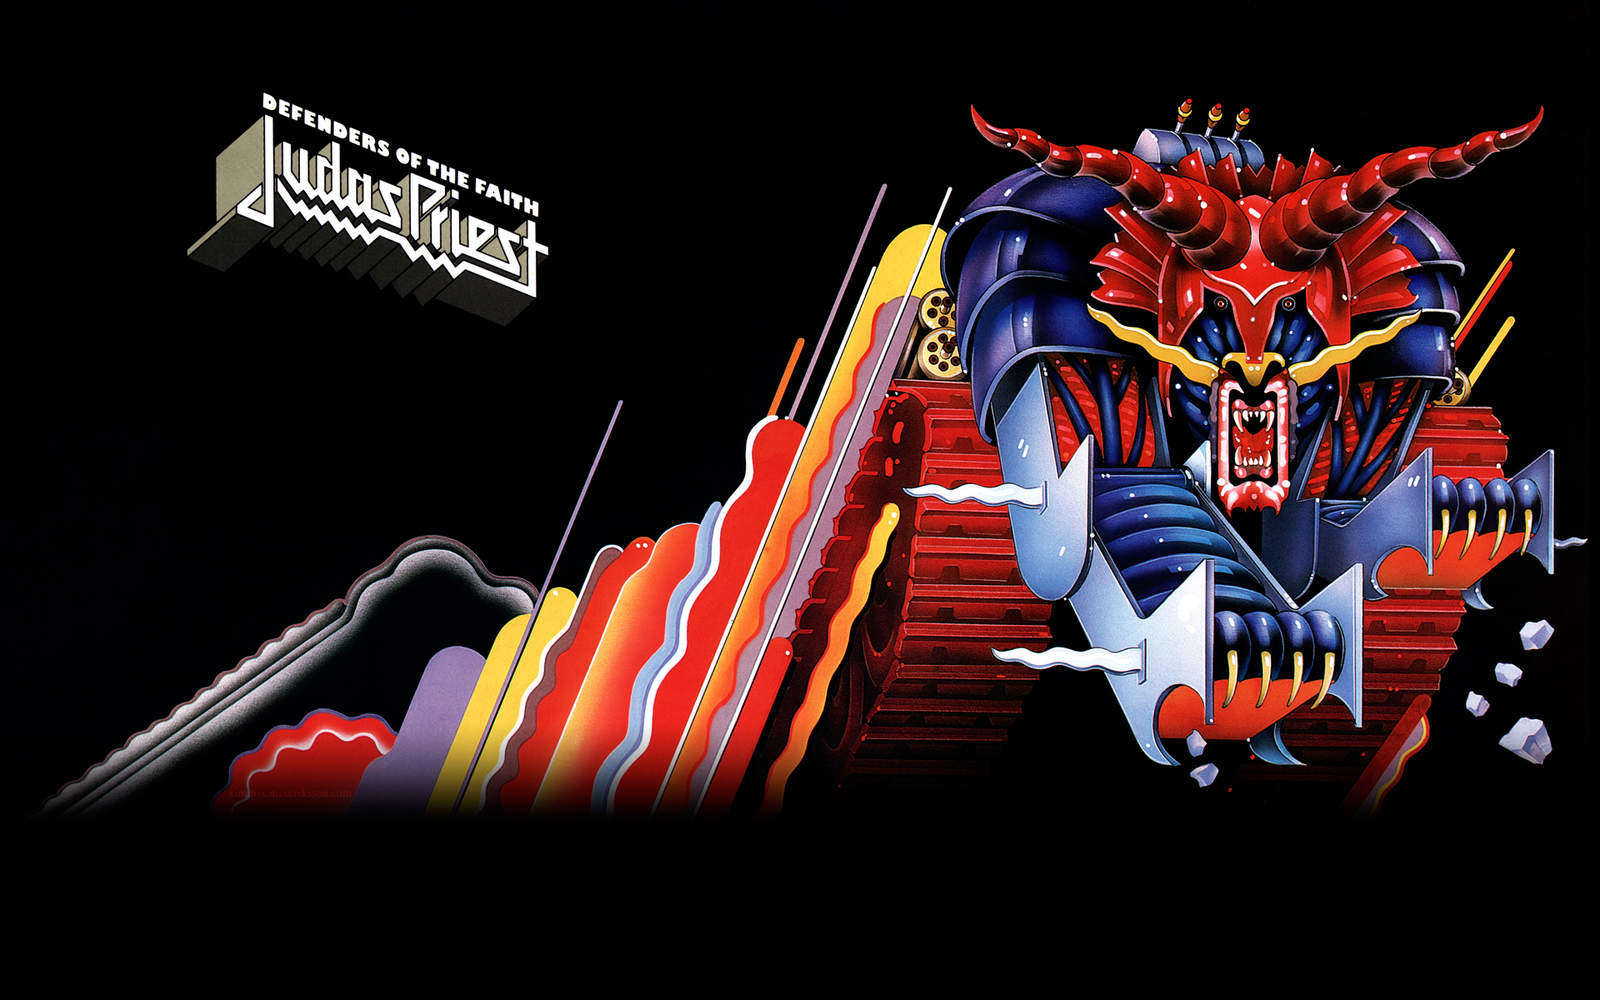 https://s3.amazonaws.com/uploads.bmxmuseum.com/user-images/152/wp_judas_priest_defenders_of_the_faith_logo_1920x1200px_2_100423140701_2576c2554a0.jpg